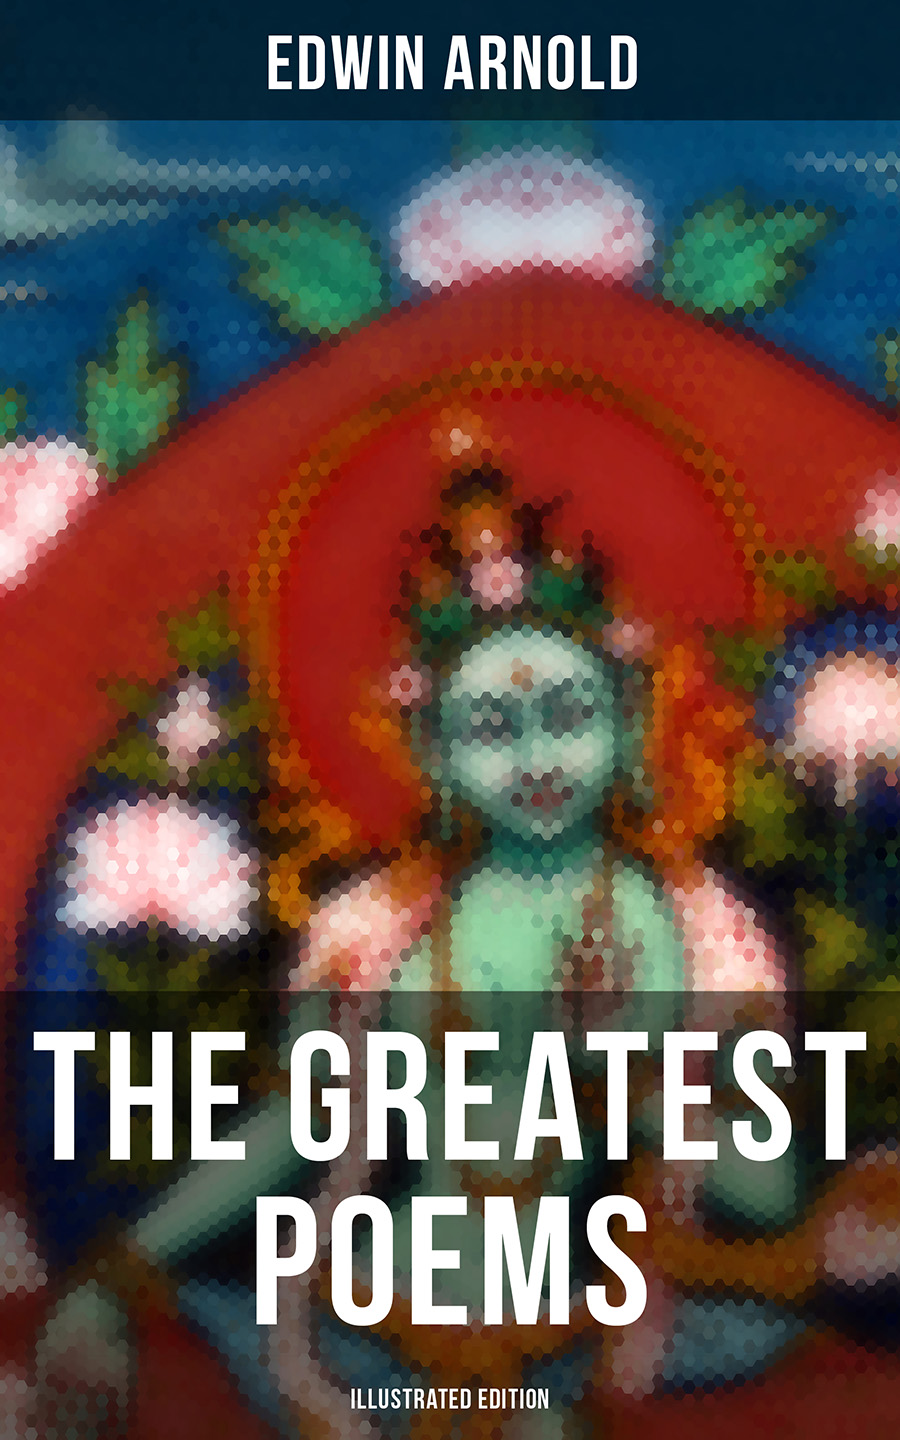 Edwin Arnold The Greatest Poems of Edwin Arnold (Illustrated Edition) недорого